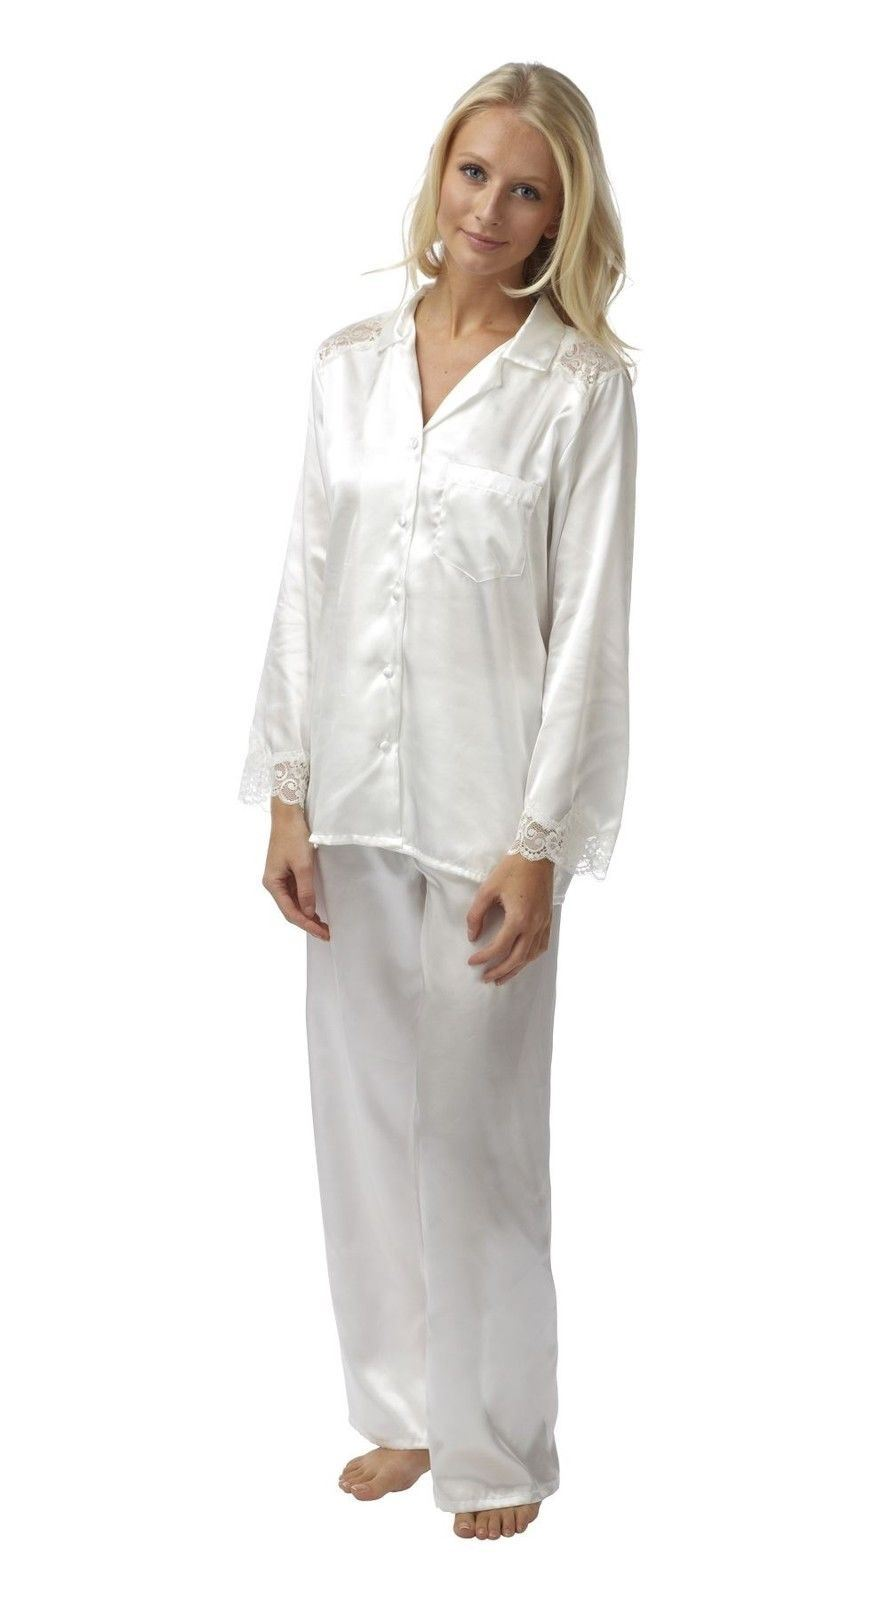 You searched for: satin pajama! Etsy is the home to thousands of handmade, vintage, and one-of-a-kind products and gifts related to your search. No matter what you're looking for or where you are in the world, our global marketplace of sellers can help you find unique and affordable options. Let's get started!